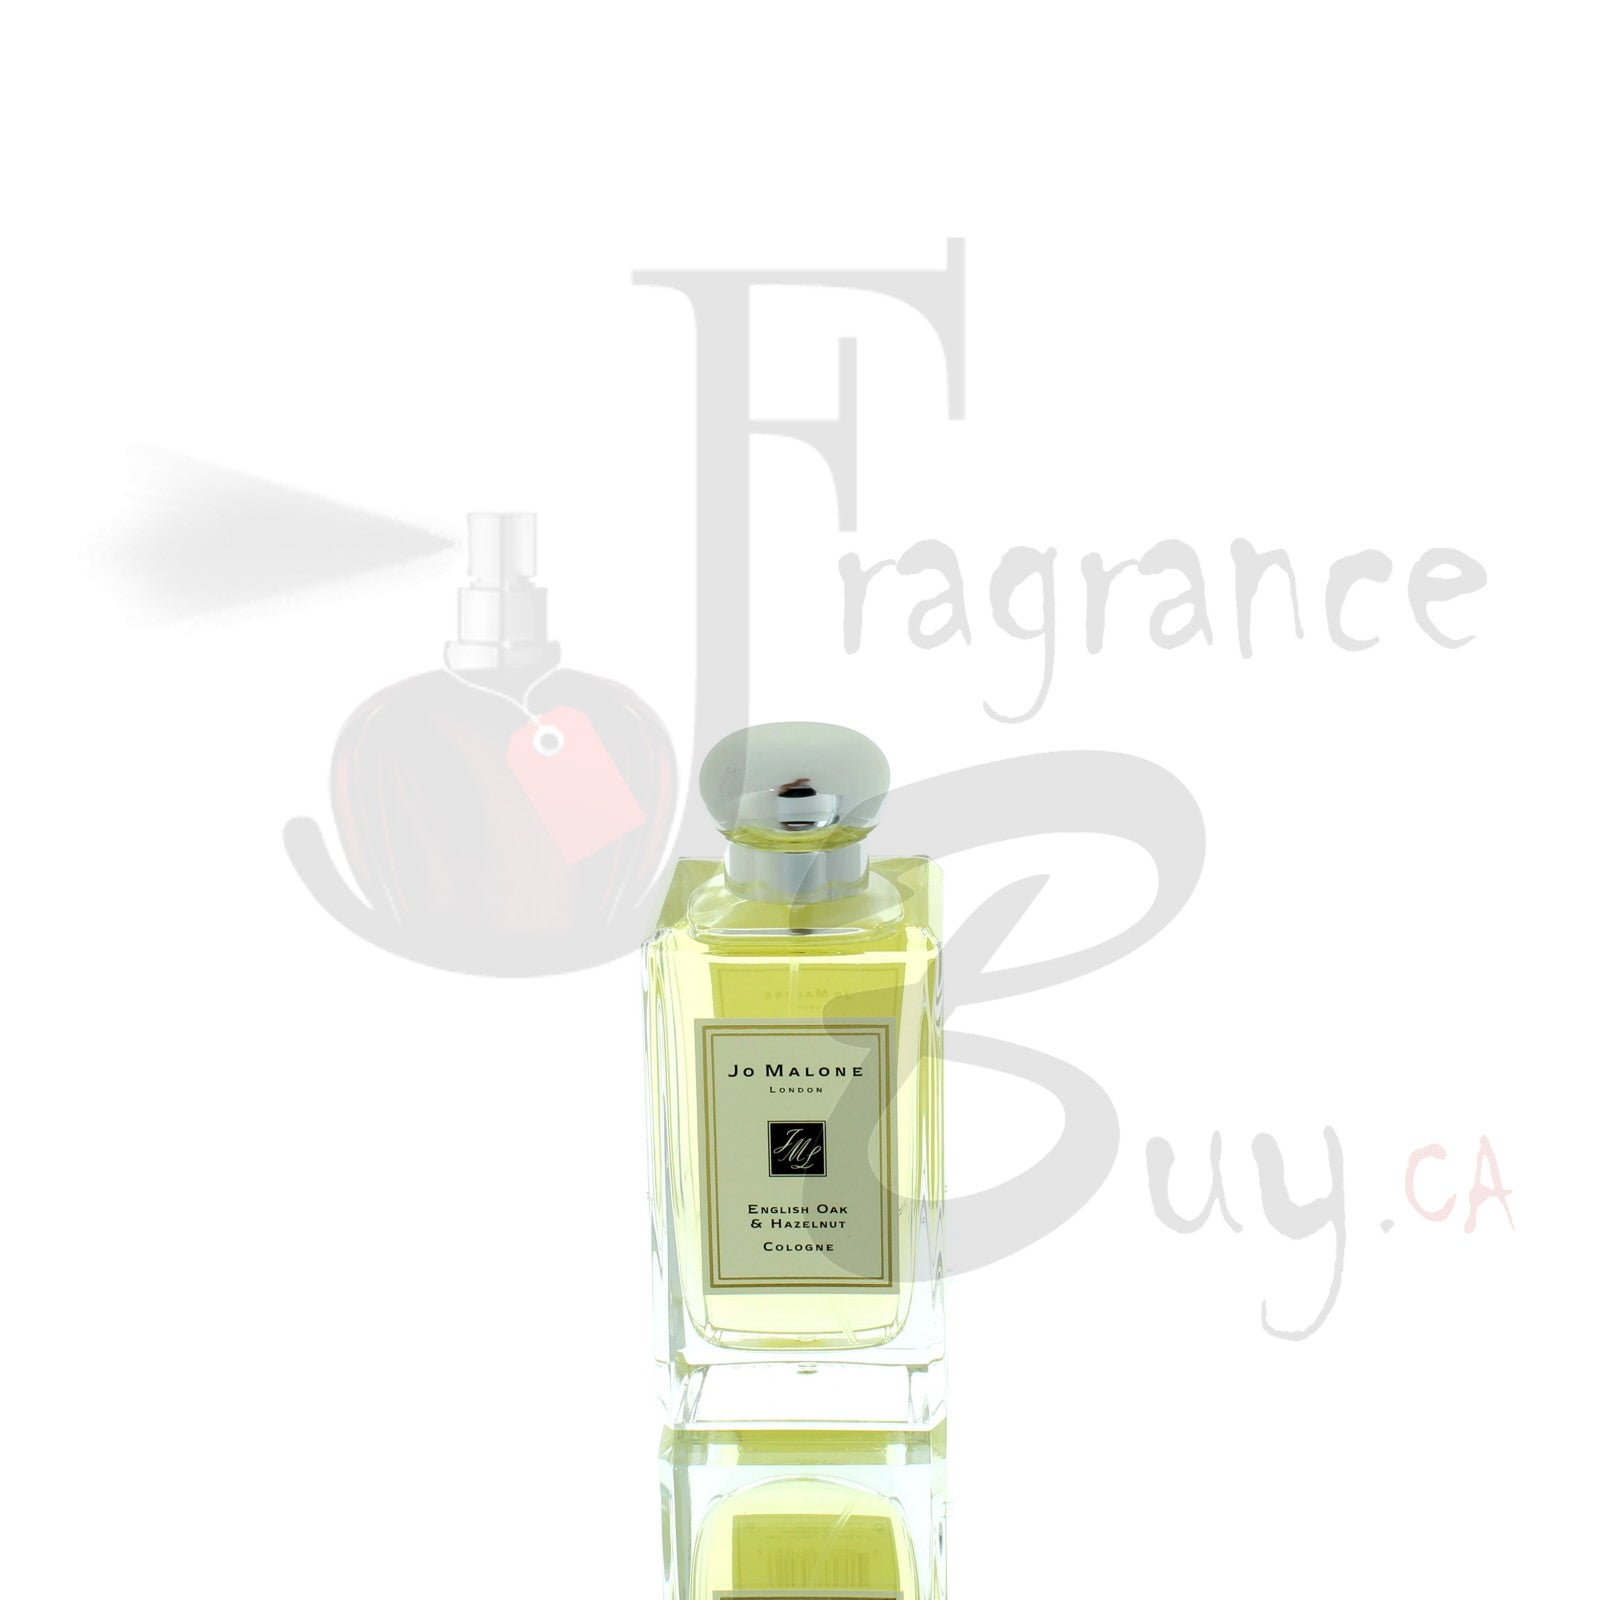 Jo Malone English Oak And Hazelnut For Man/Woman